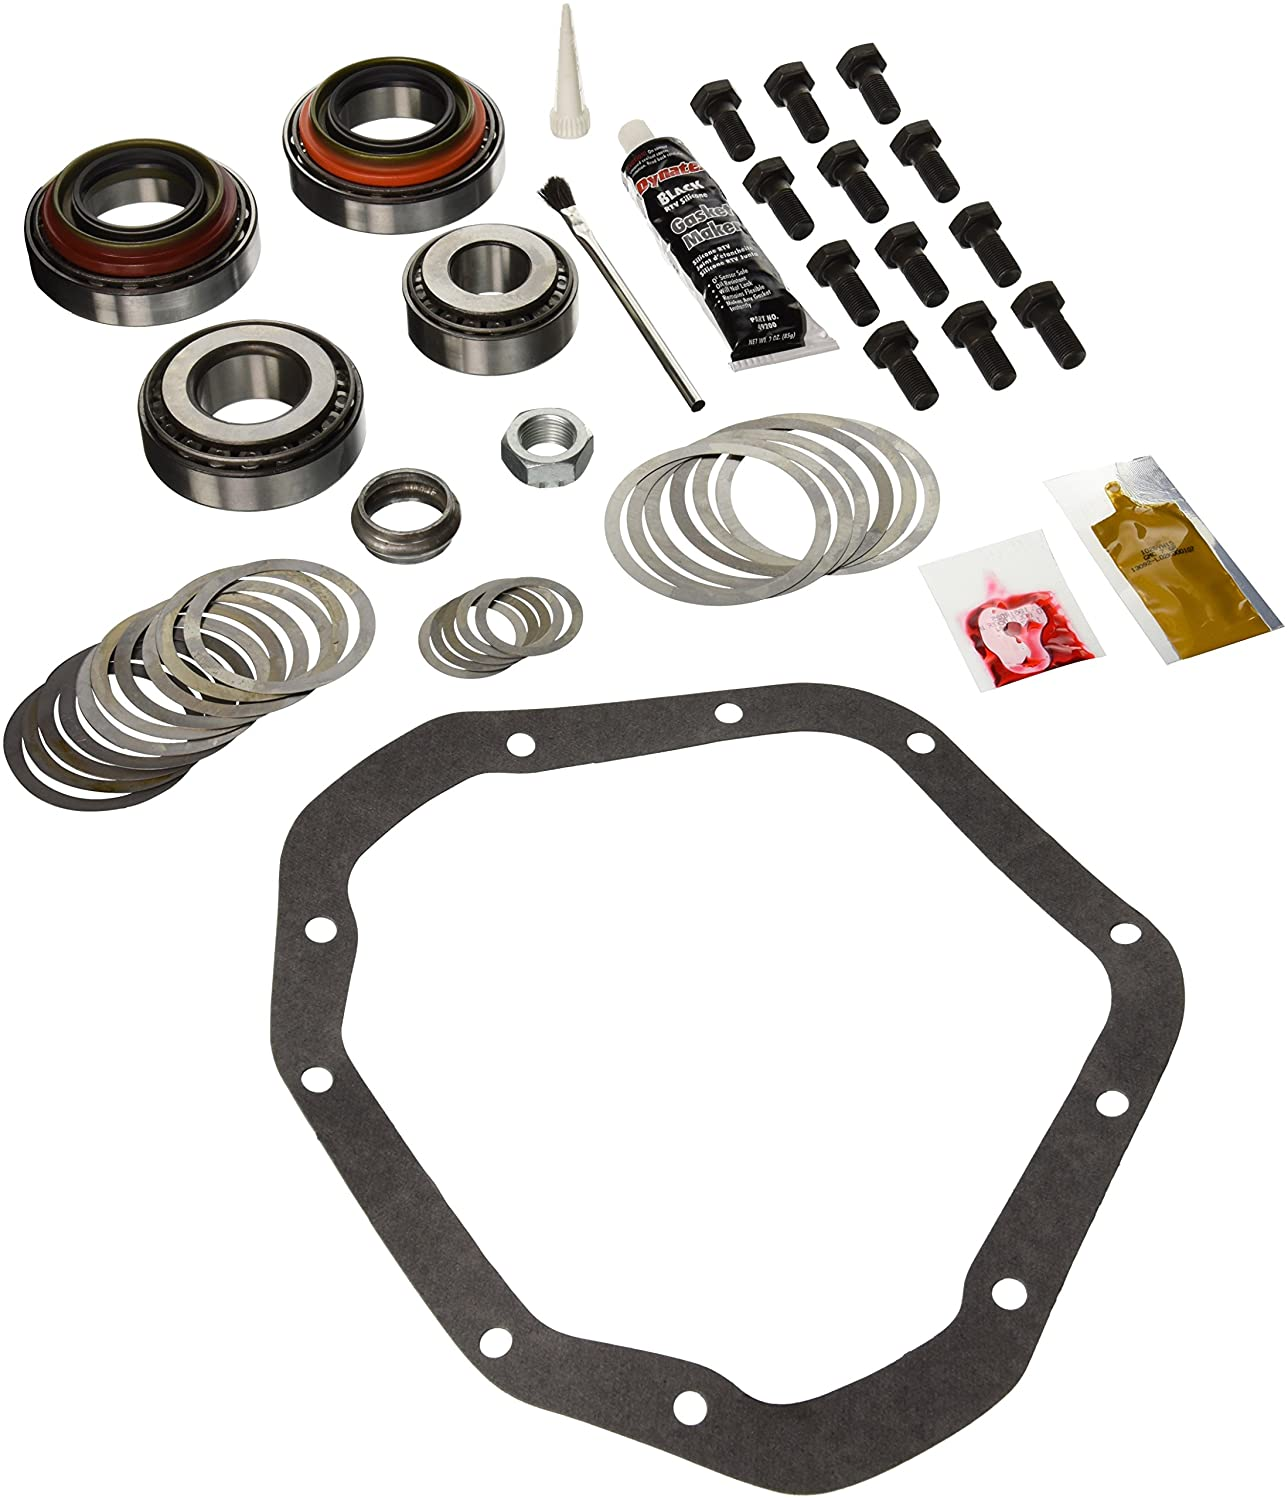 Motive Gear RA29RMKT Light Duty Differential Bearing Master Kit